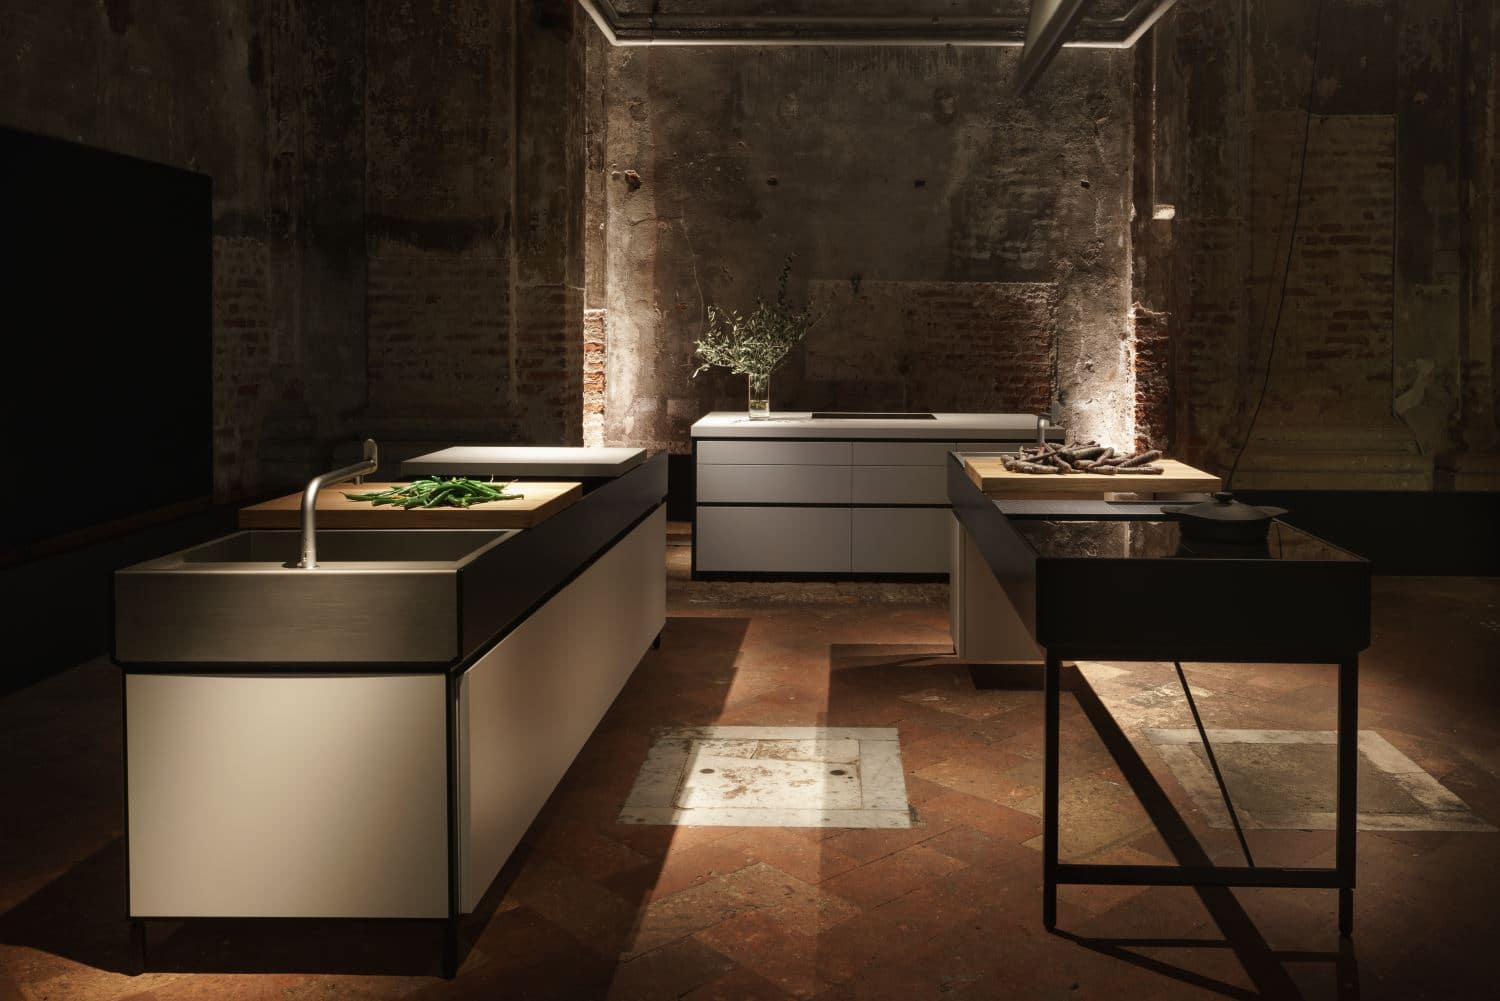 b1 Milan_kitchen island + workbench